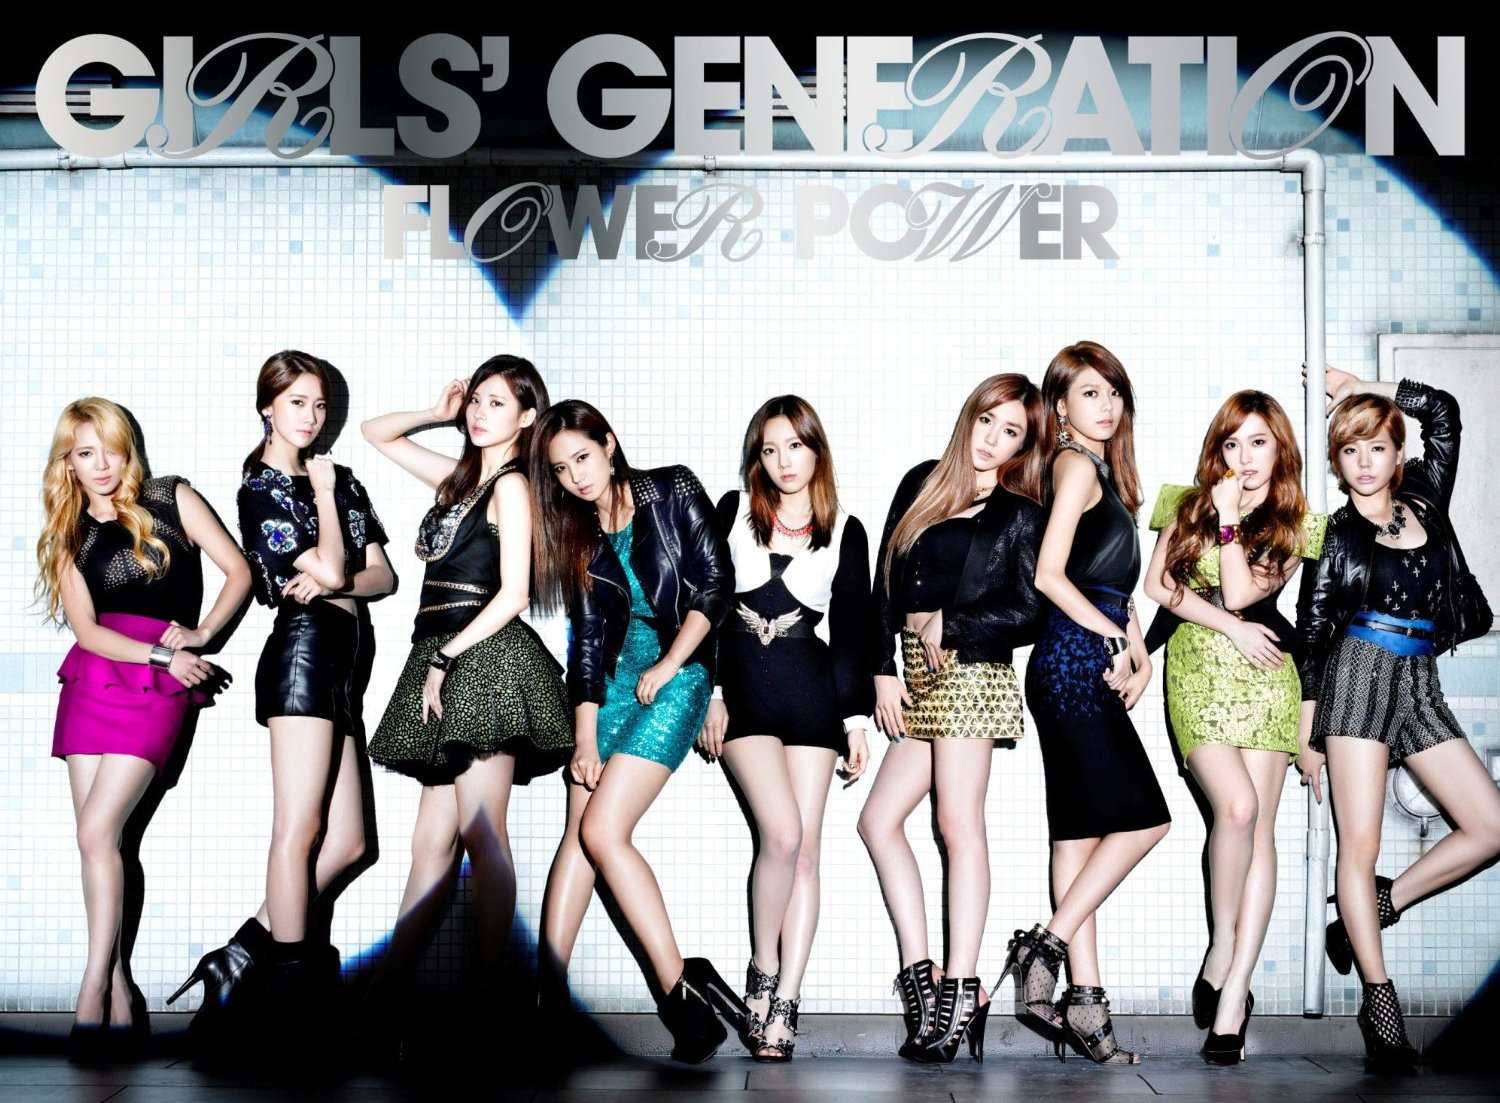 snsd girls generation - photo #15